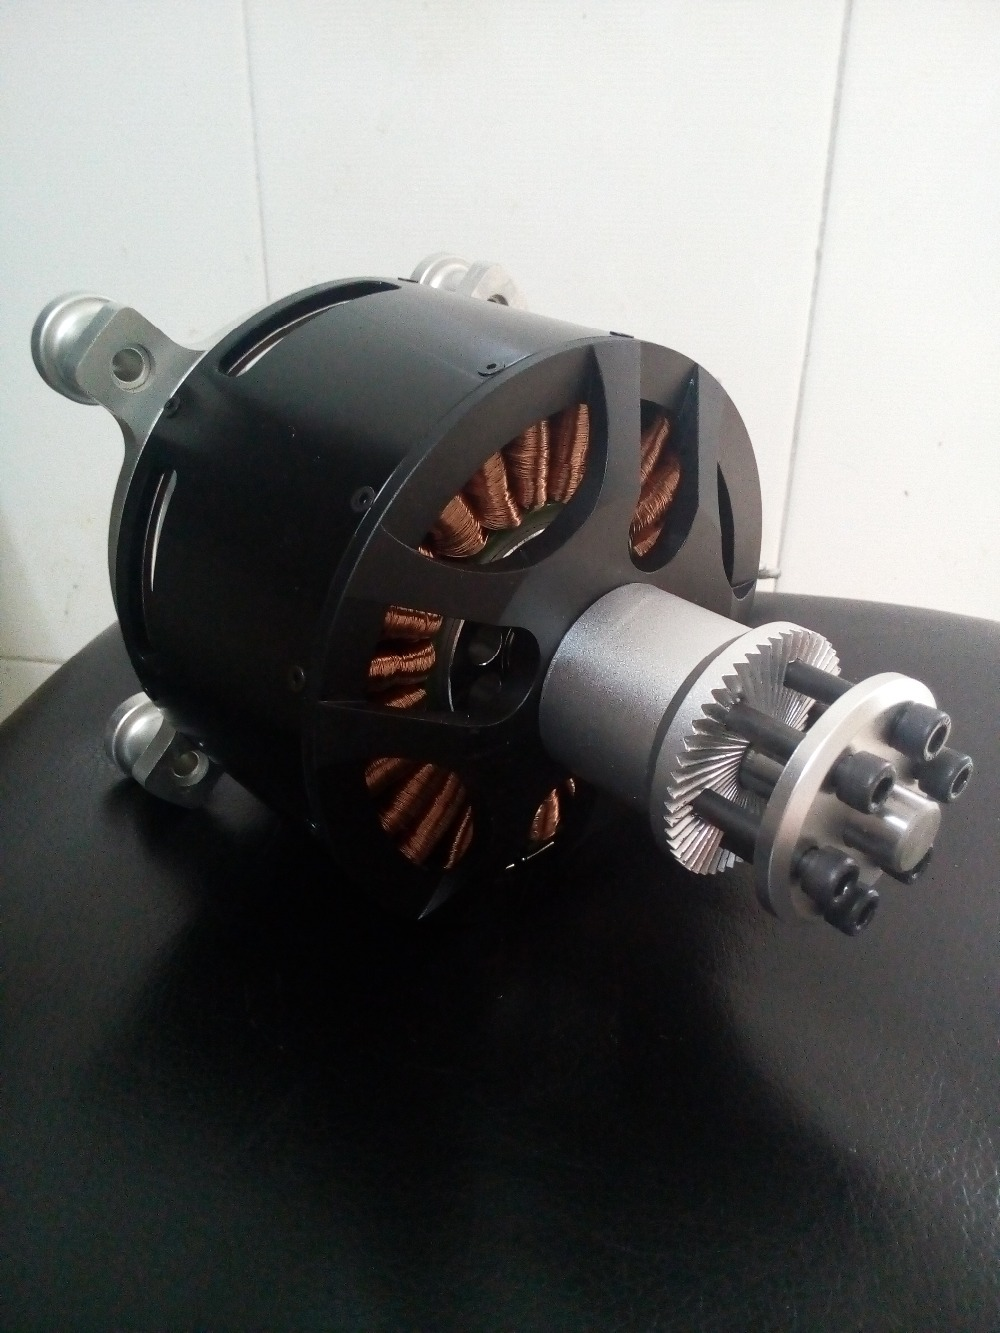 S 12090 Kv130 Outrunner Brushless Motor This Brushless